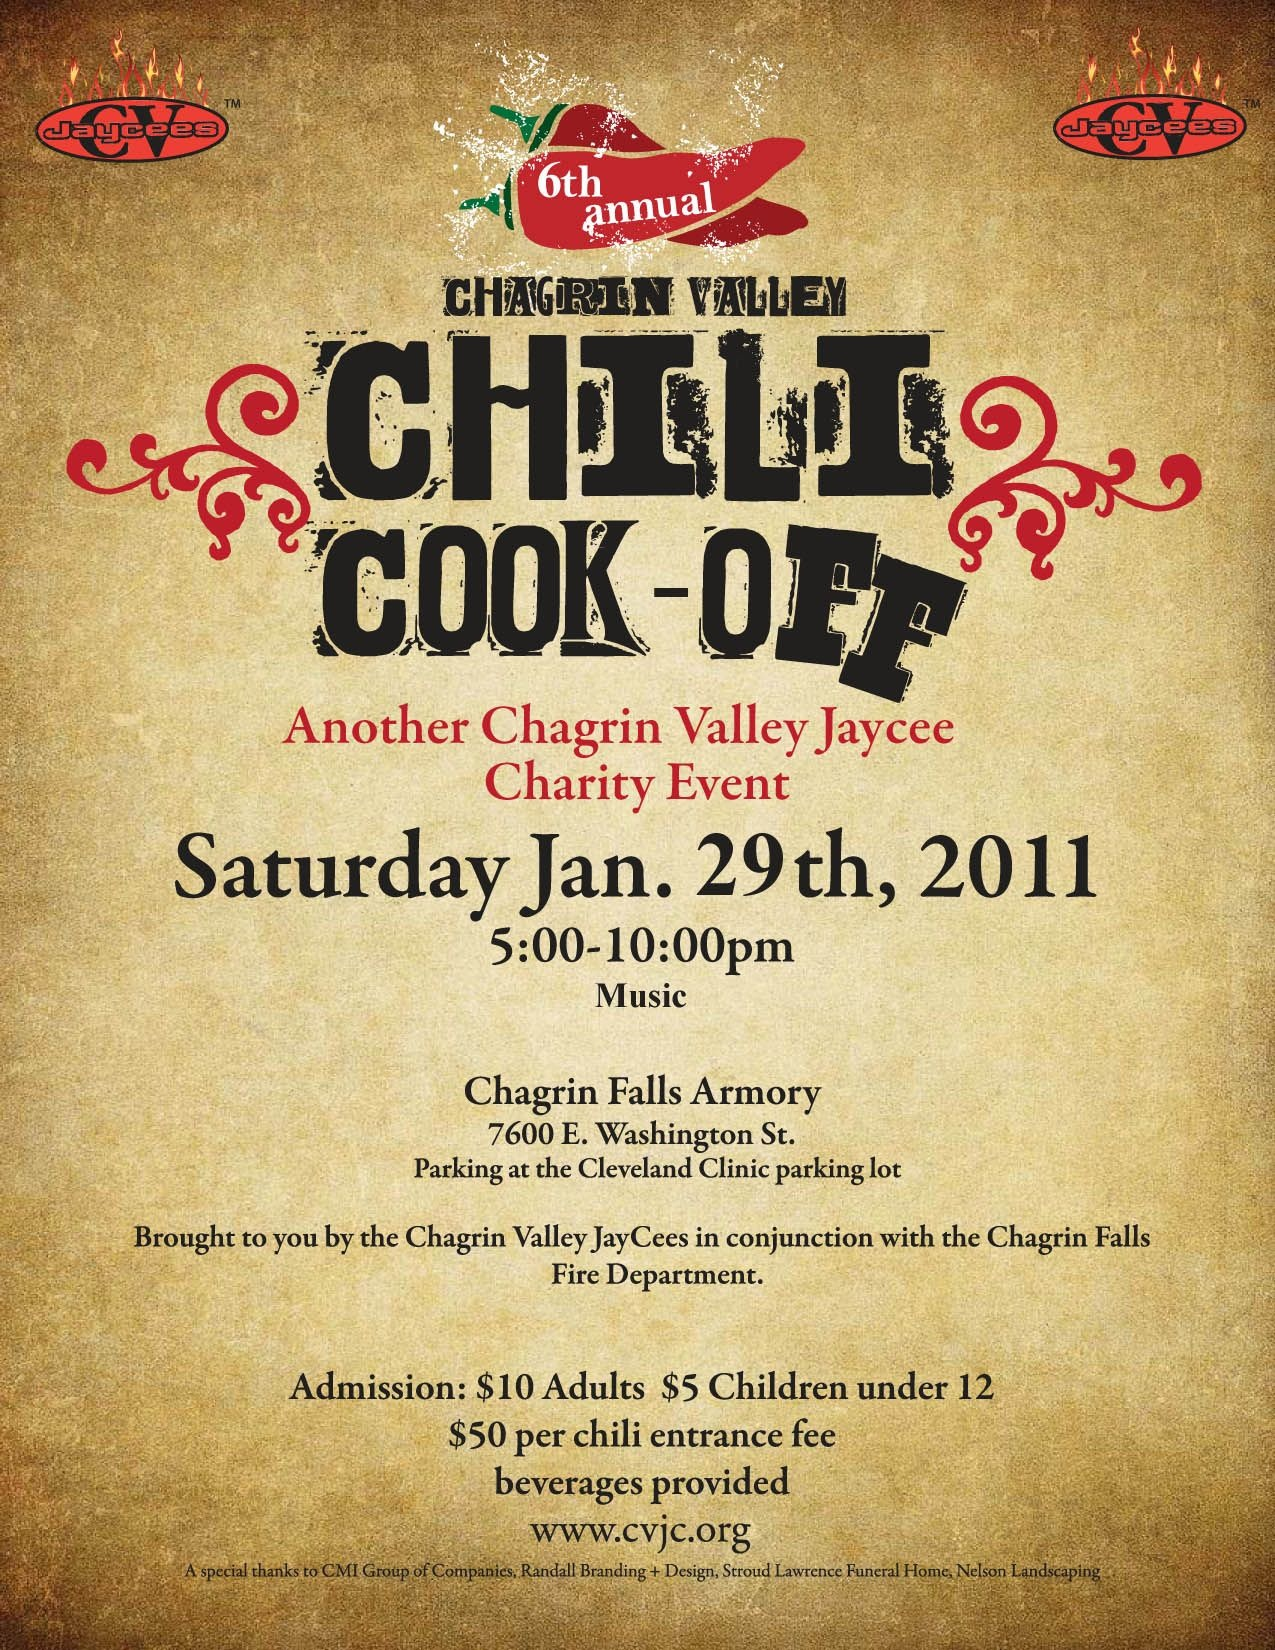 Chili Cook Off Flyer Template Free Printable - Wow - Image - Free Printable Flyers For Parties